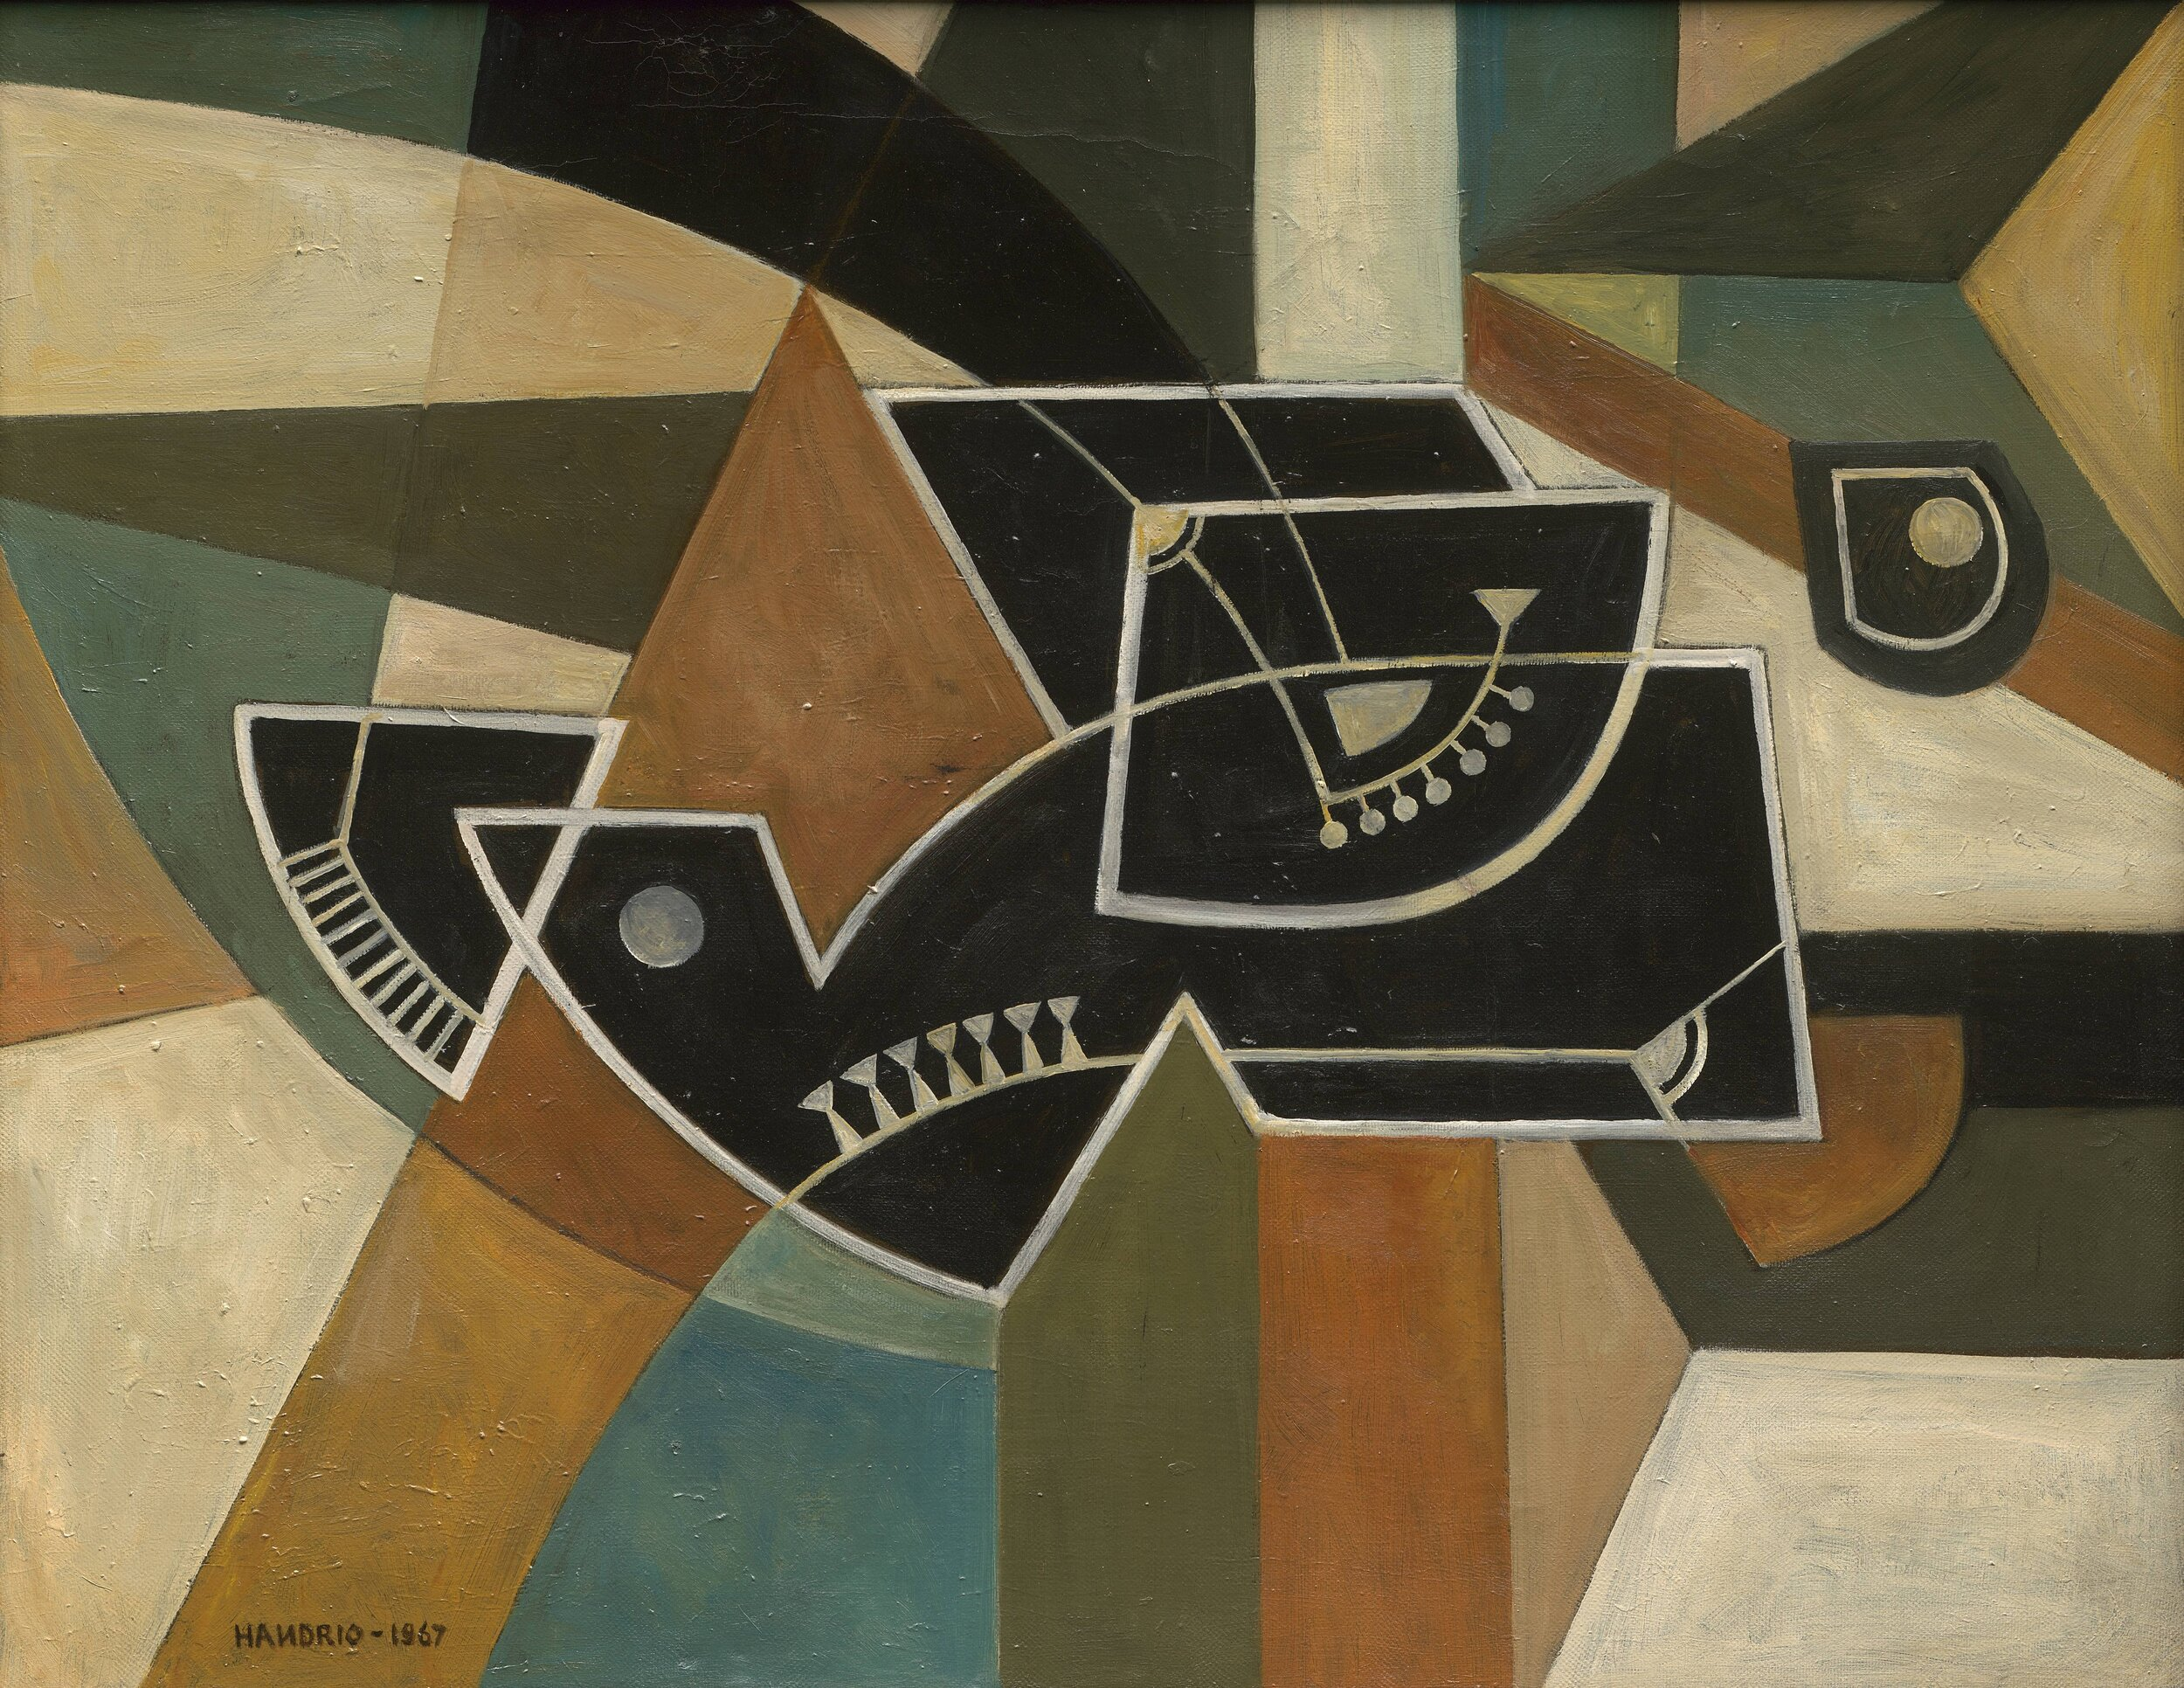 Handrio, Abstract Composition, 1967, 72 x 92 cm